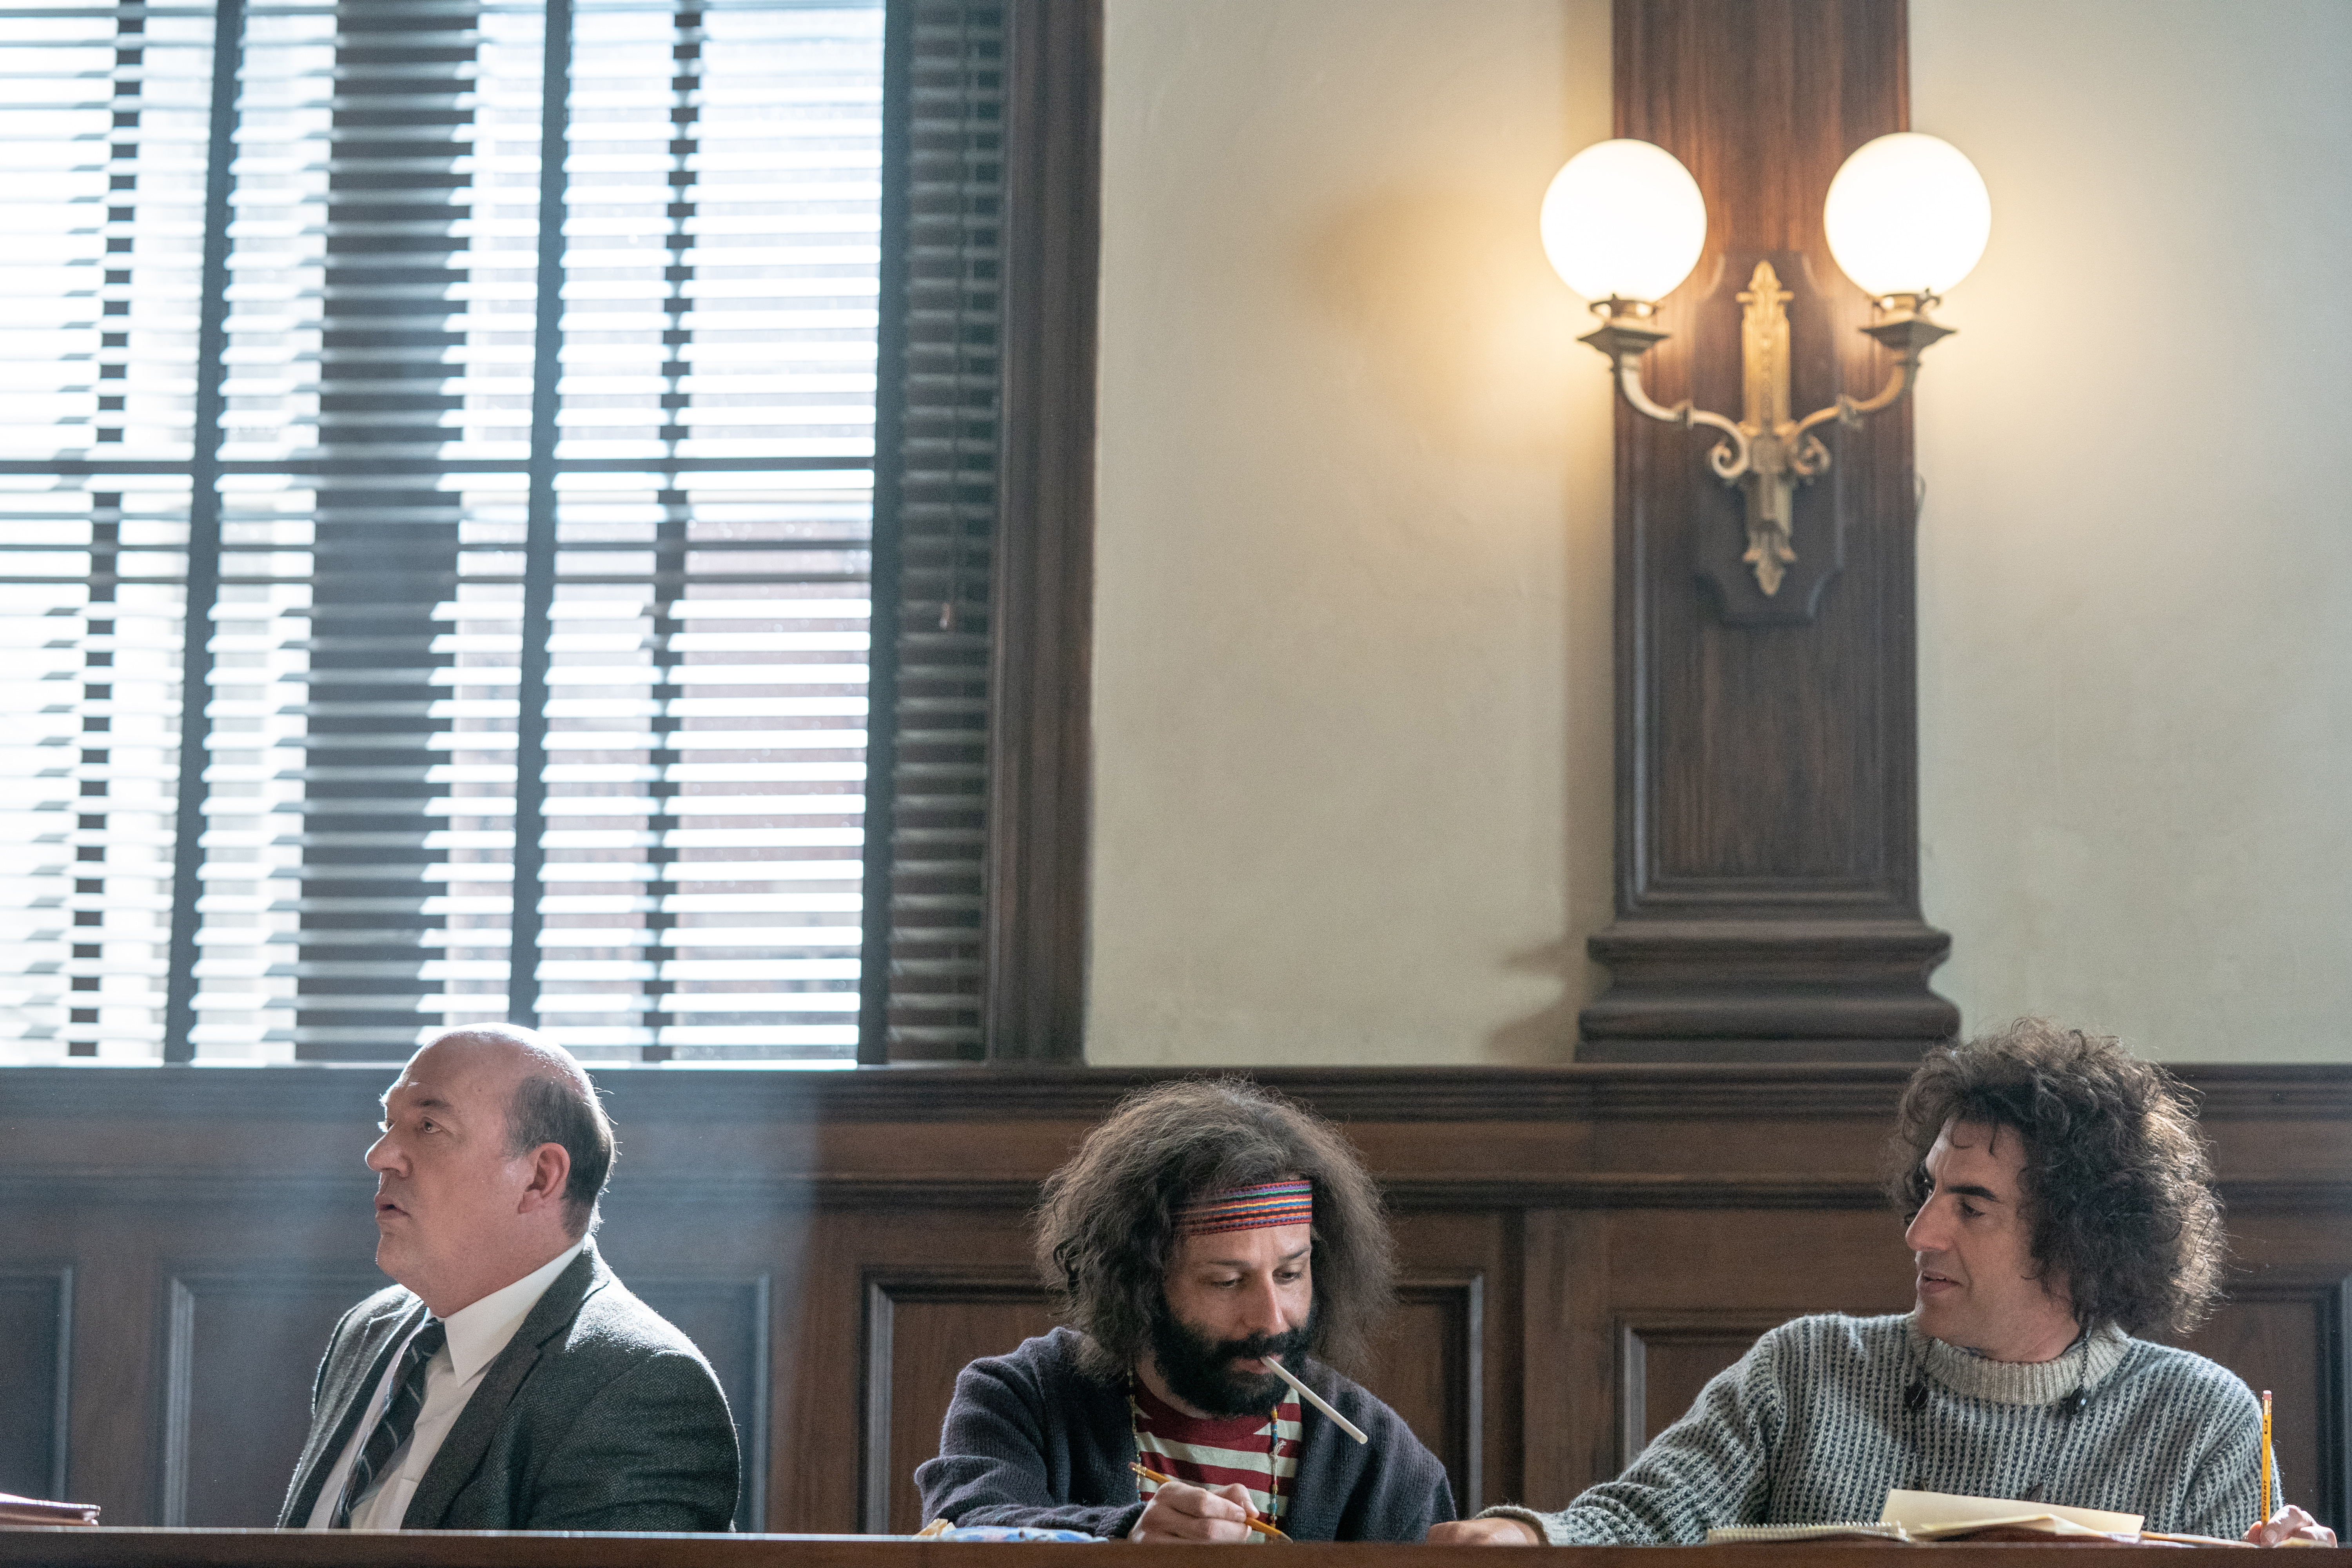 John Carroll Lynch, left, in 'The Trial of the Chicago 7' with Jeremy Strong and Sacha Baron Cohen.